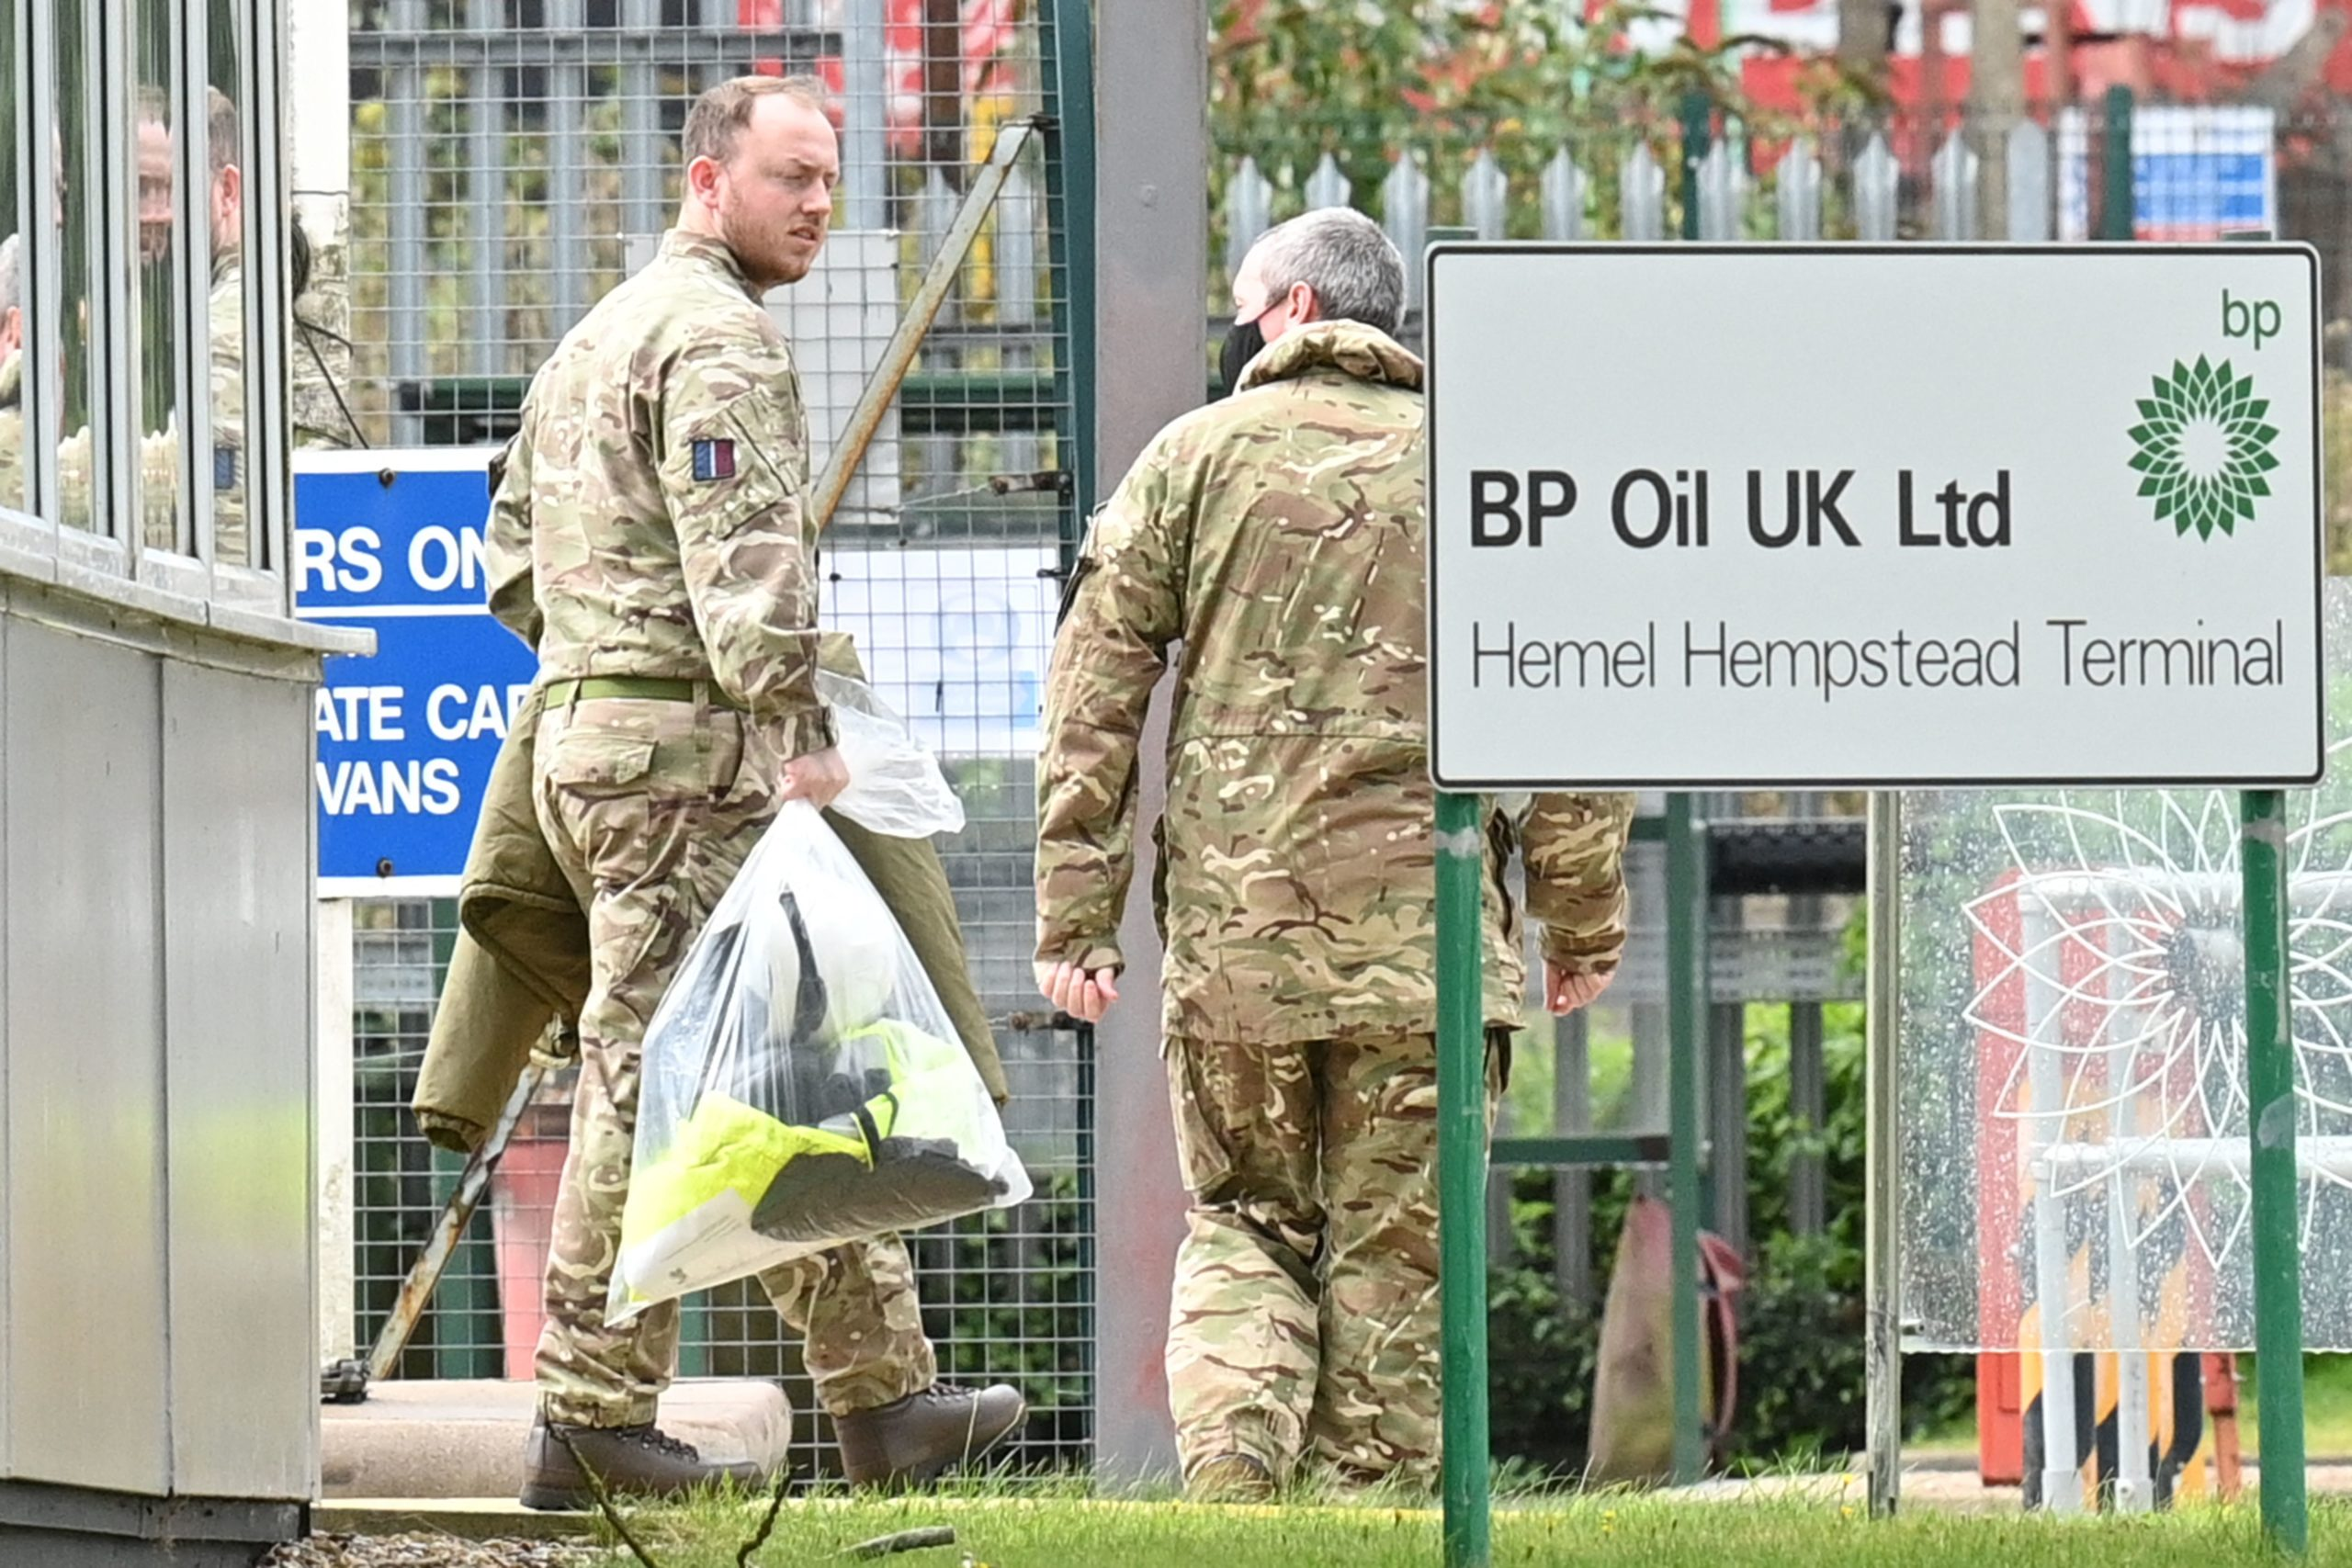 Members of the U.K. Armed Forces walk near the oil depot located in north London on Tuesday. (Justin Tallis/AFP via Getty Images)